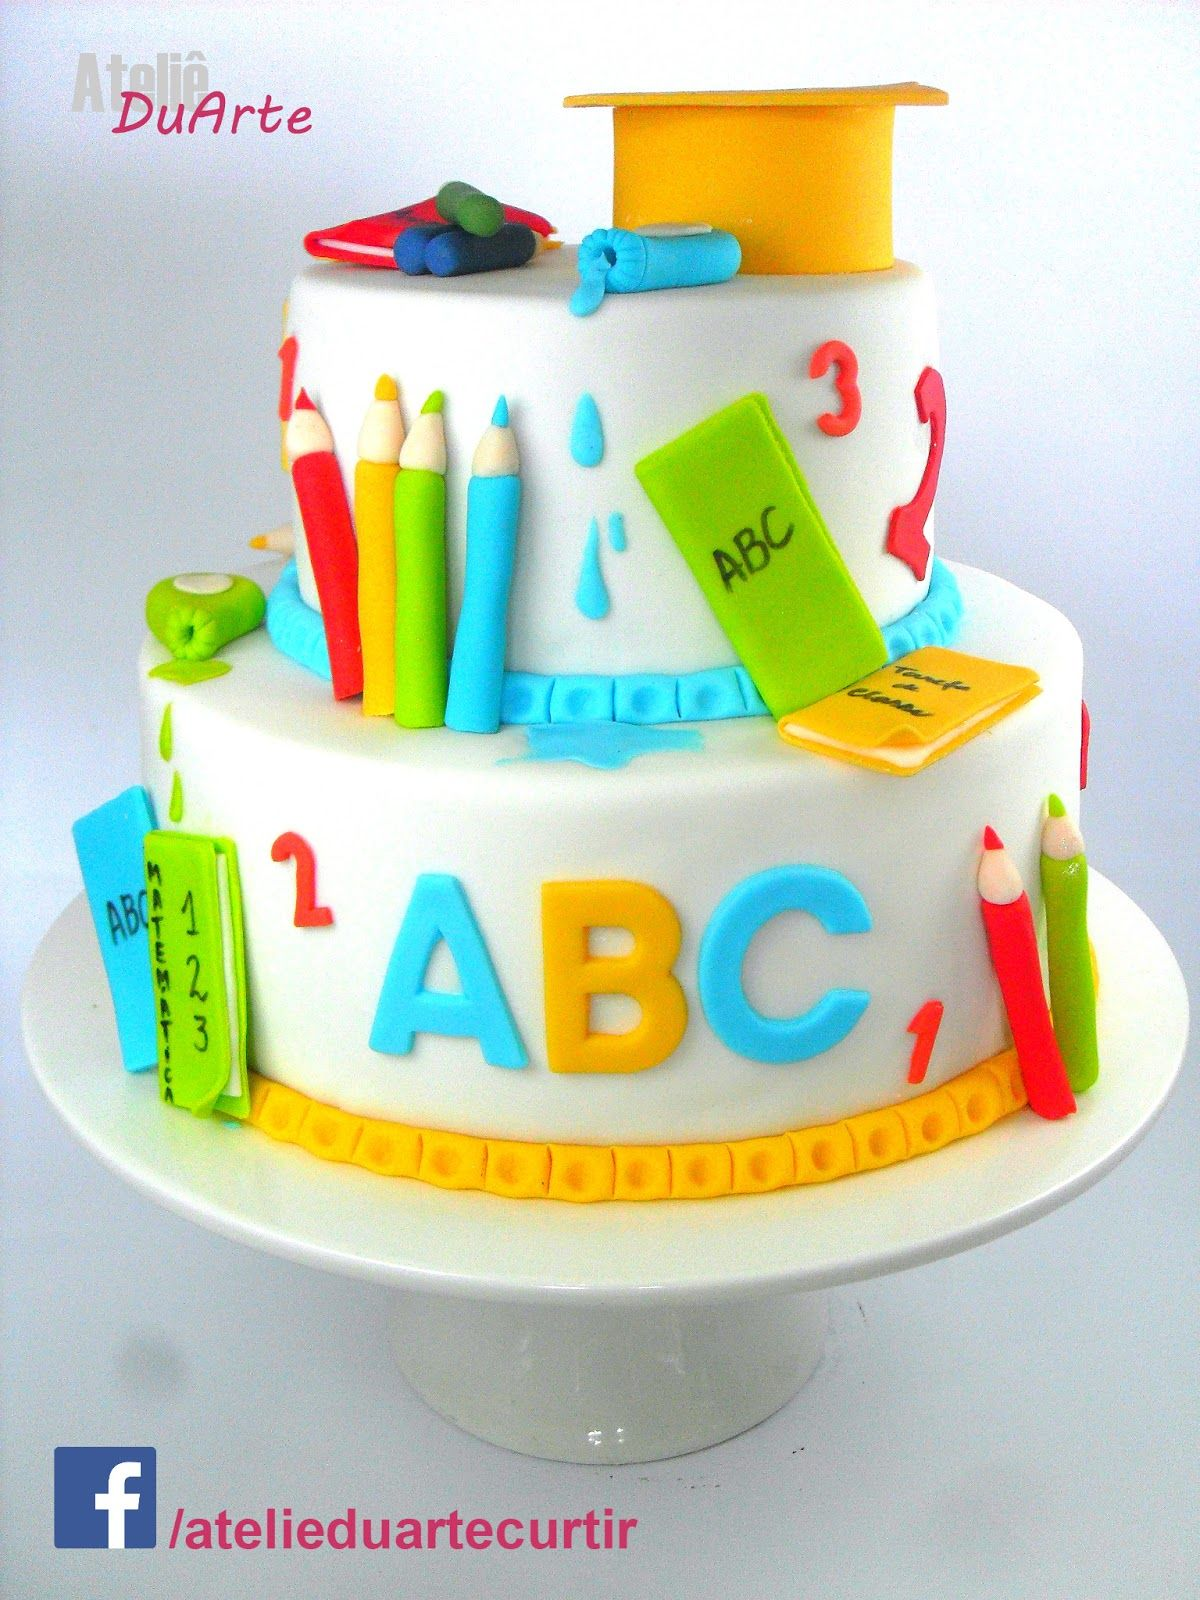 Abc cake decorating 28 images abc cake decorating 28 for Abc cake decoration